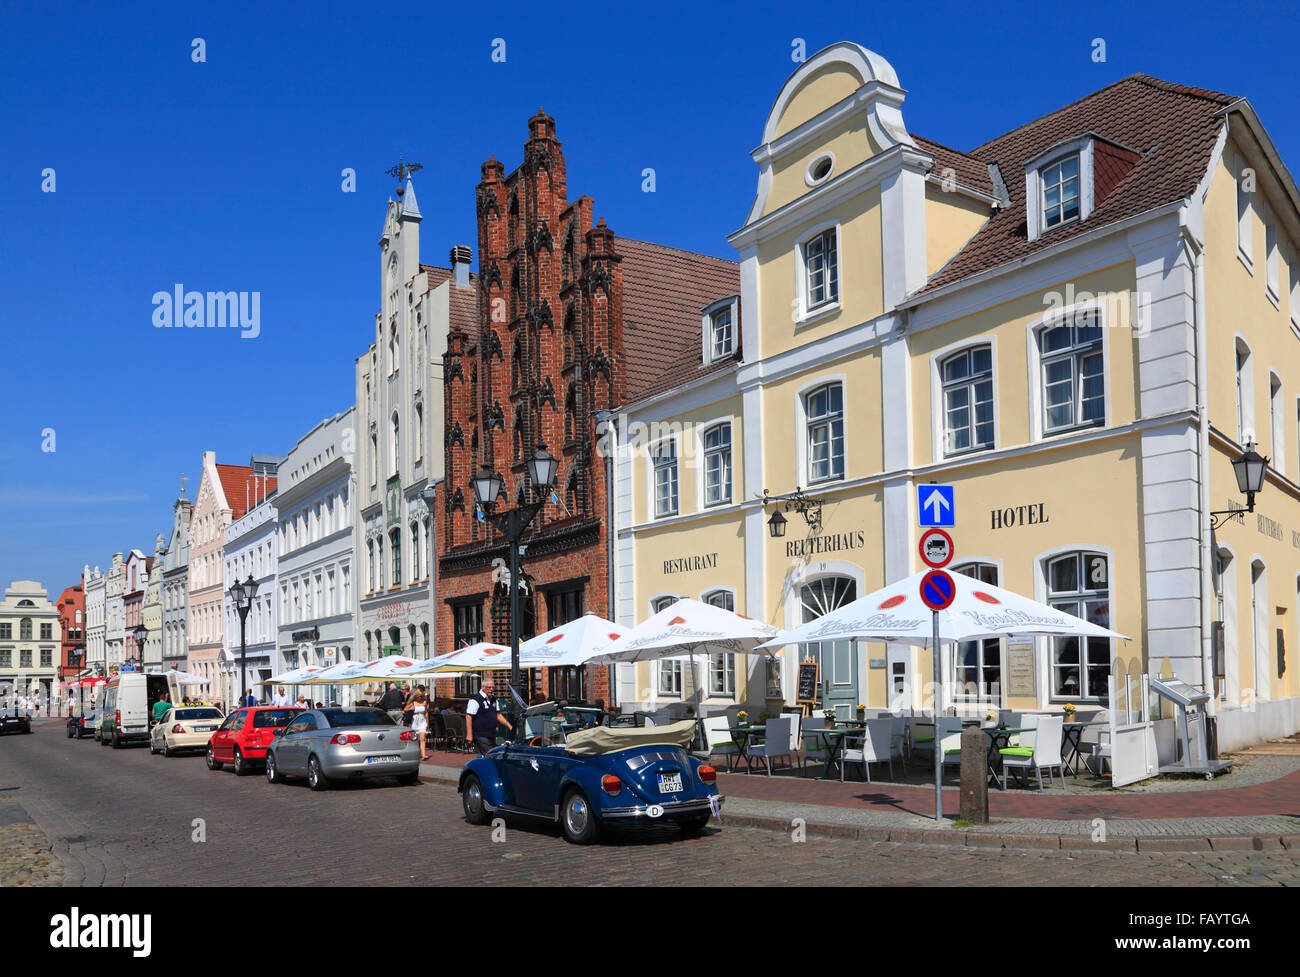 Houses with cafes at market square, Wismar, Baltic Sea, Mecklenburg Western Pomerania, Germany, Europe - Stock Image